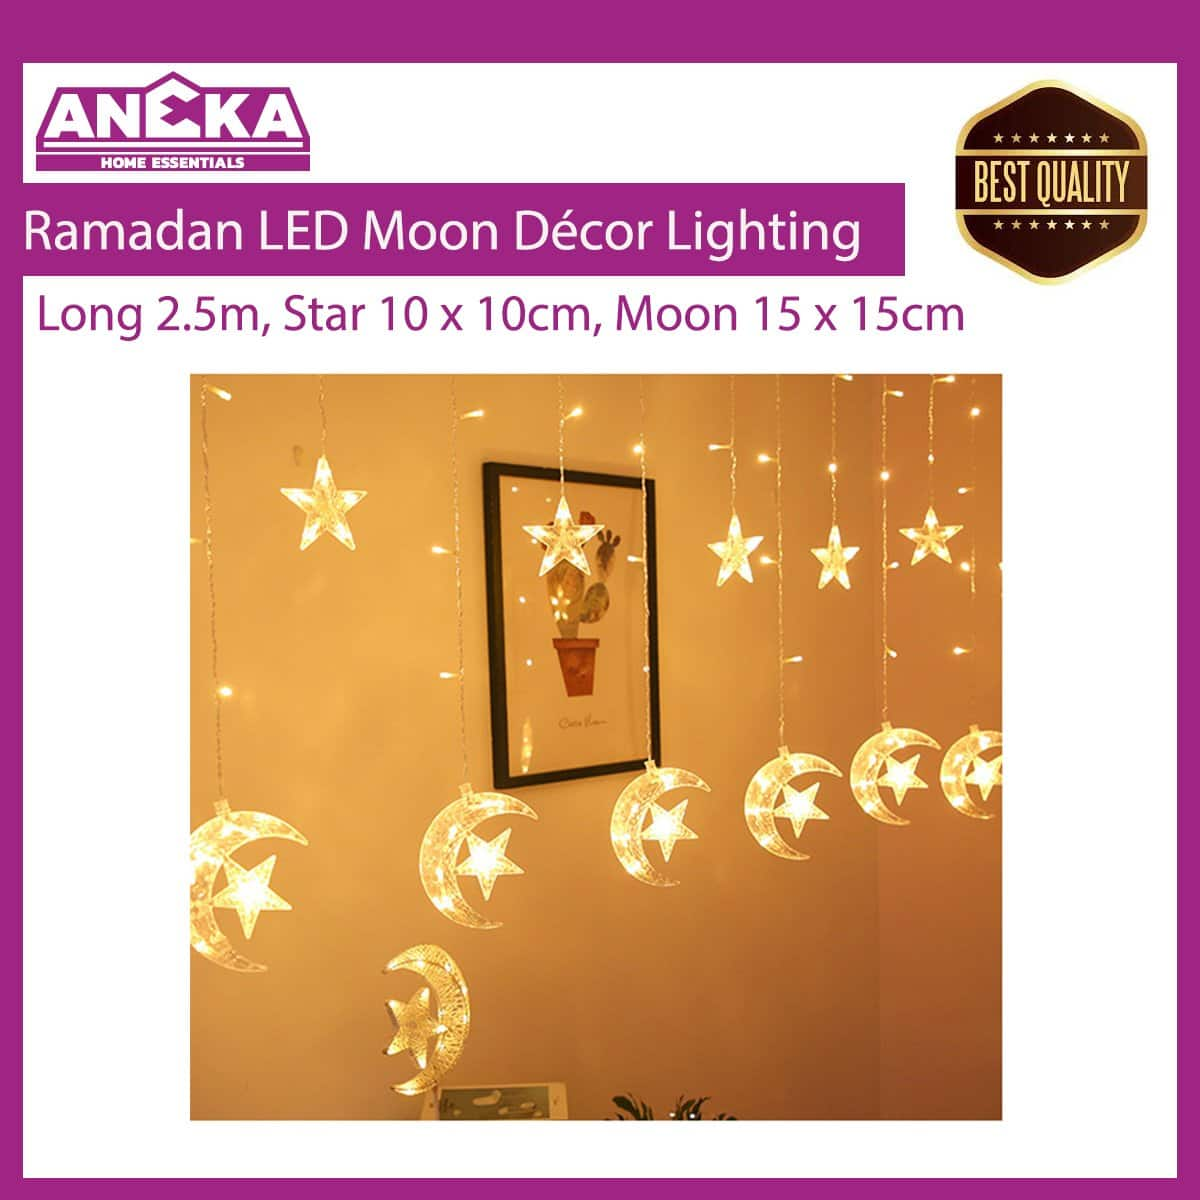 Ramadan LED Moon Décor Lighting